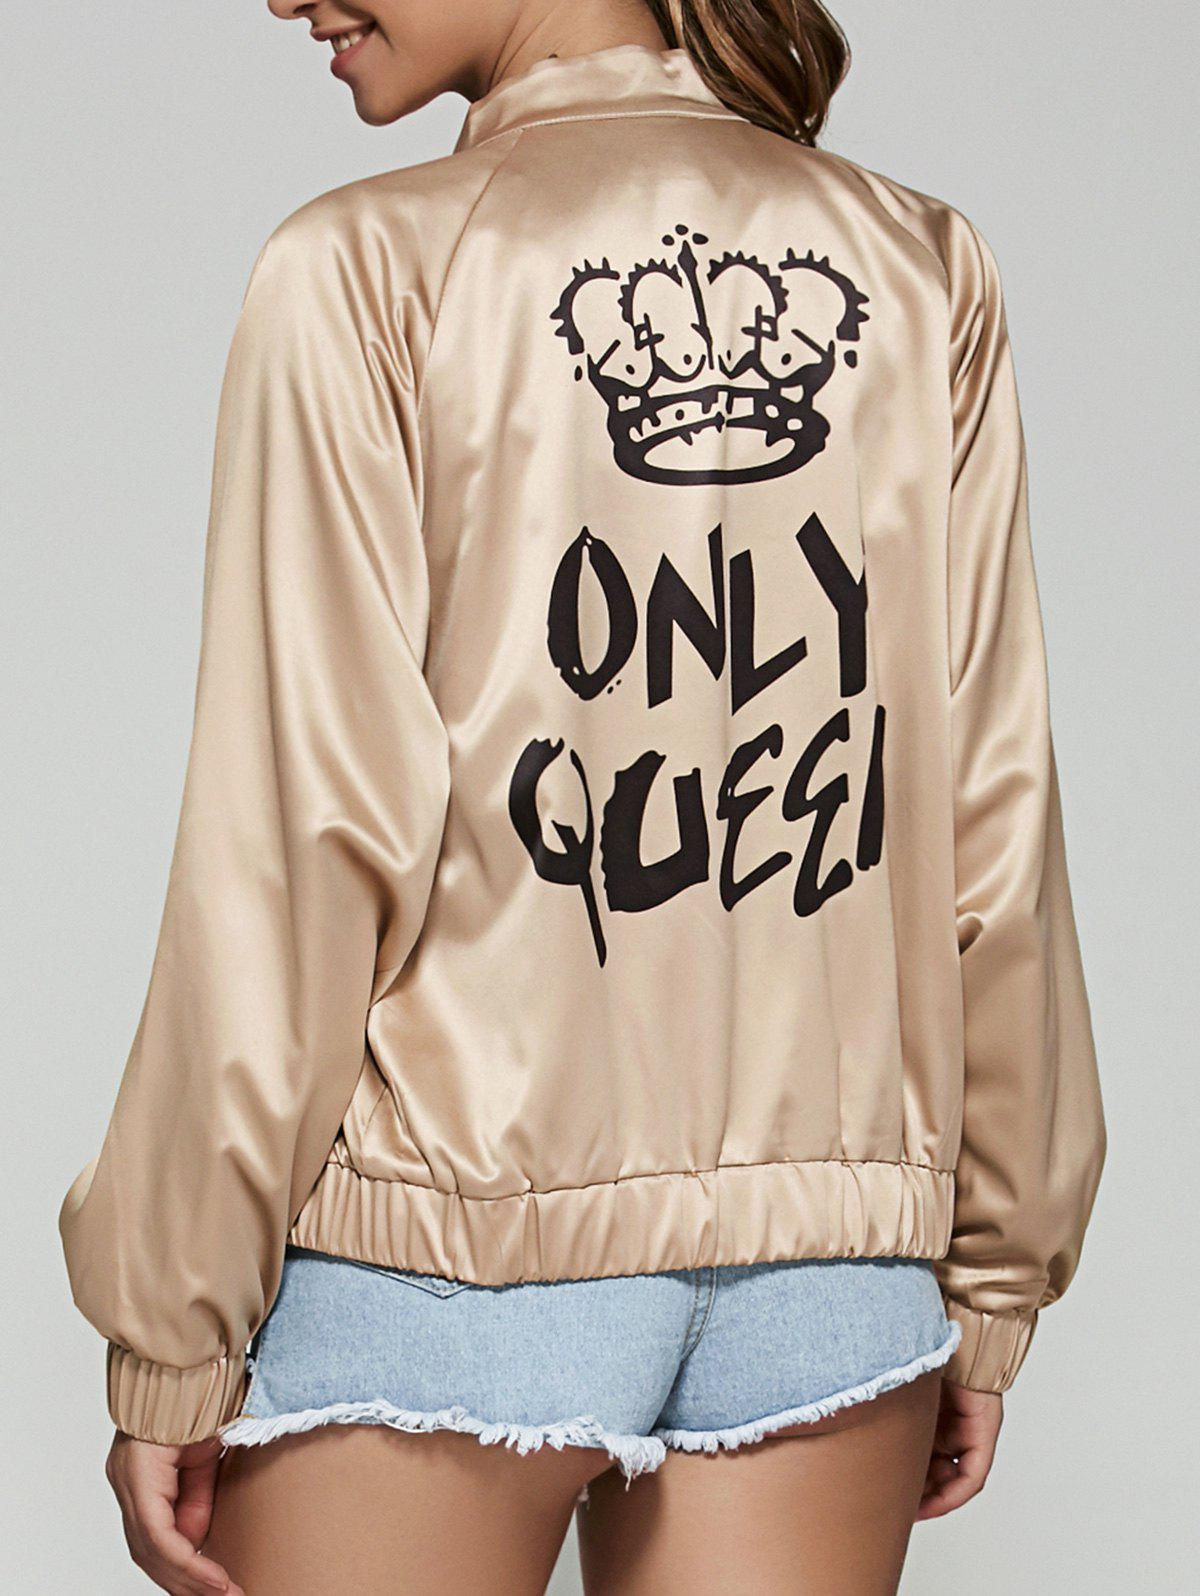 Only Queen Satin Bomber JacketWomen<br><br><br>Size: L<br>Color: CHAMPAGNE